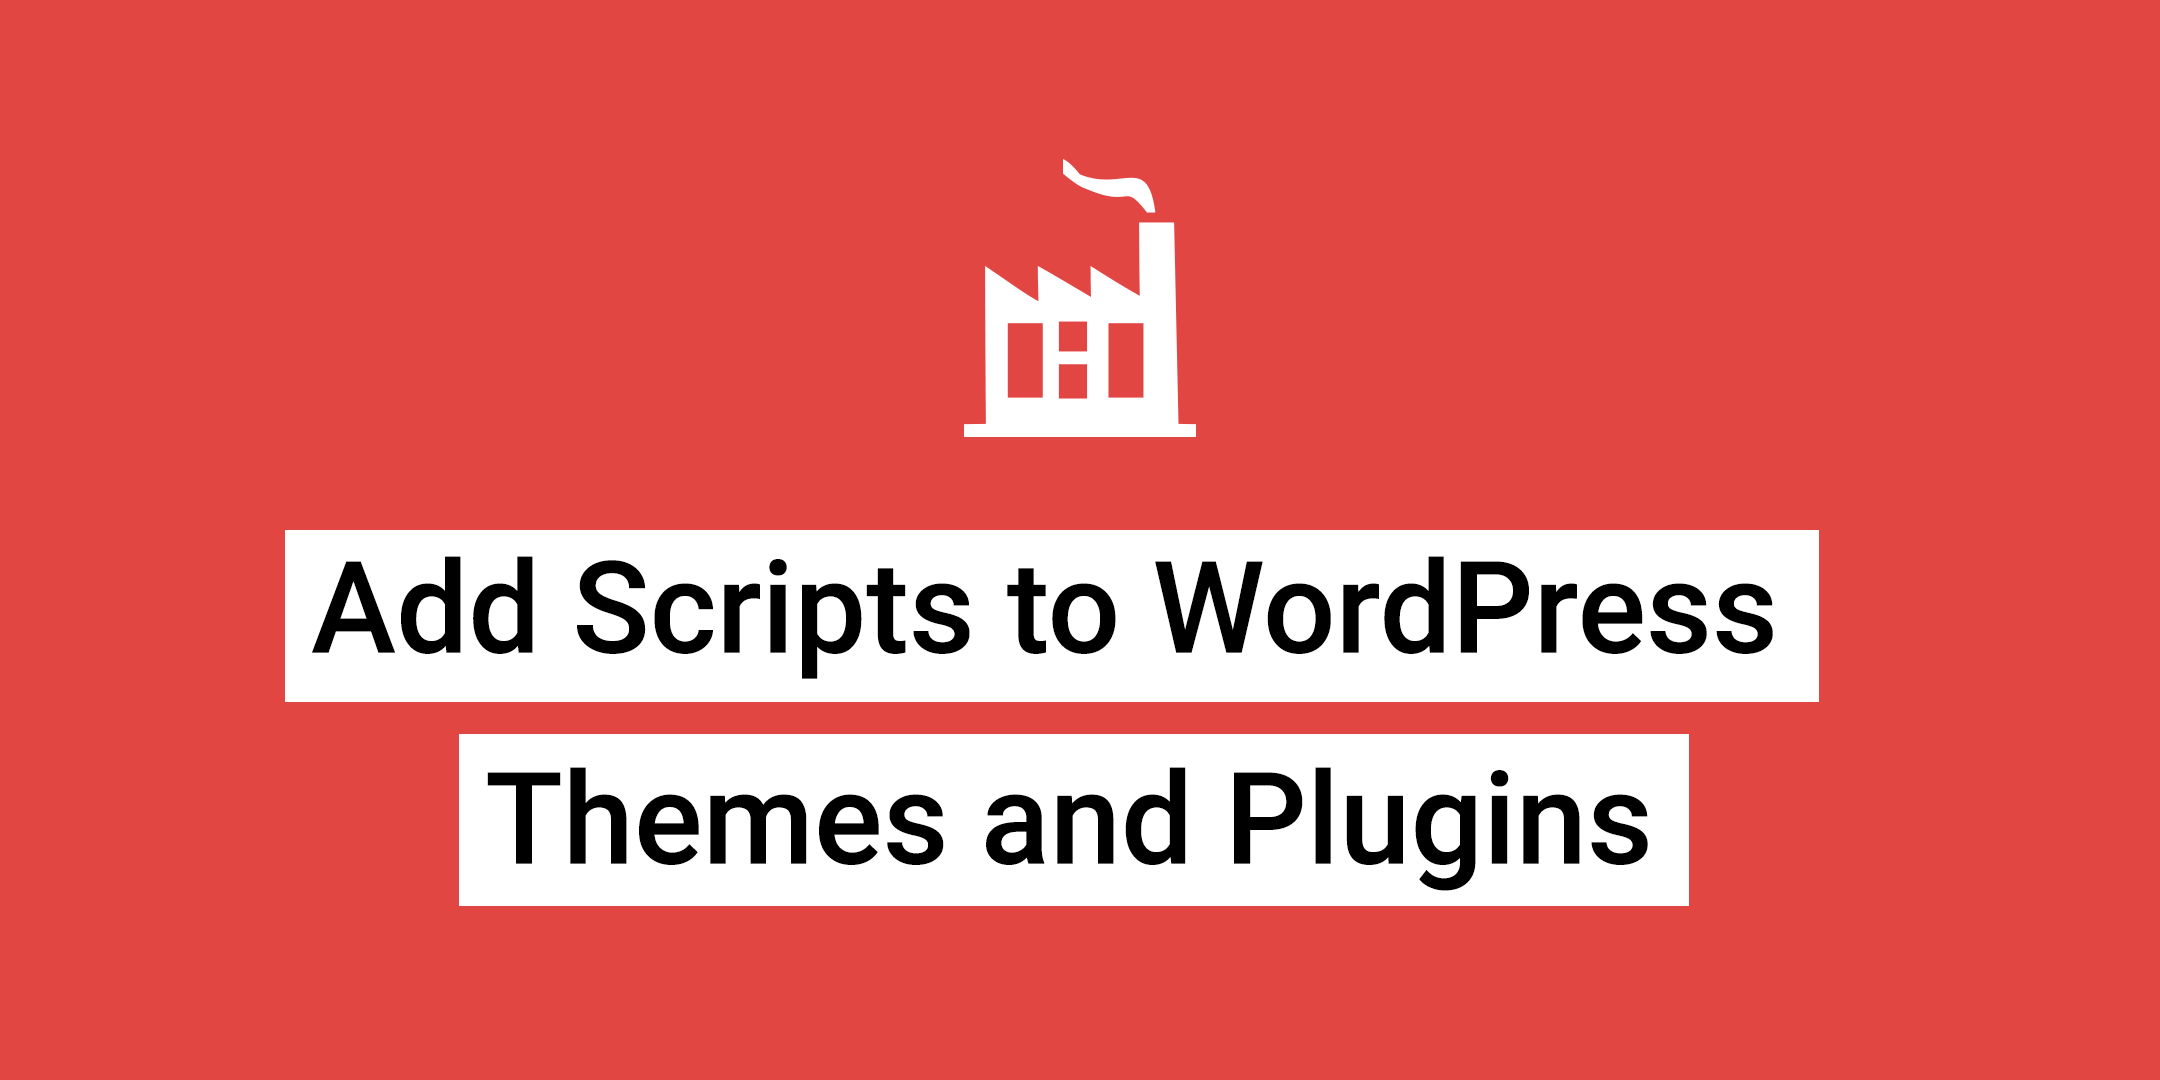 Add Scripts to WordPress Themes and Plugins